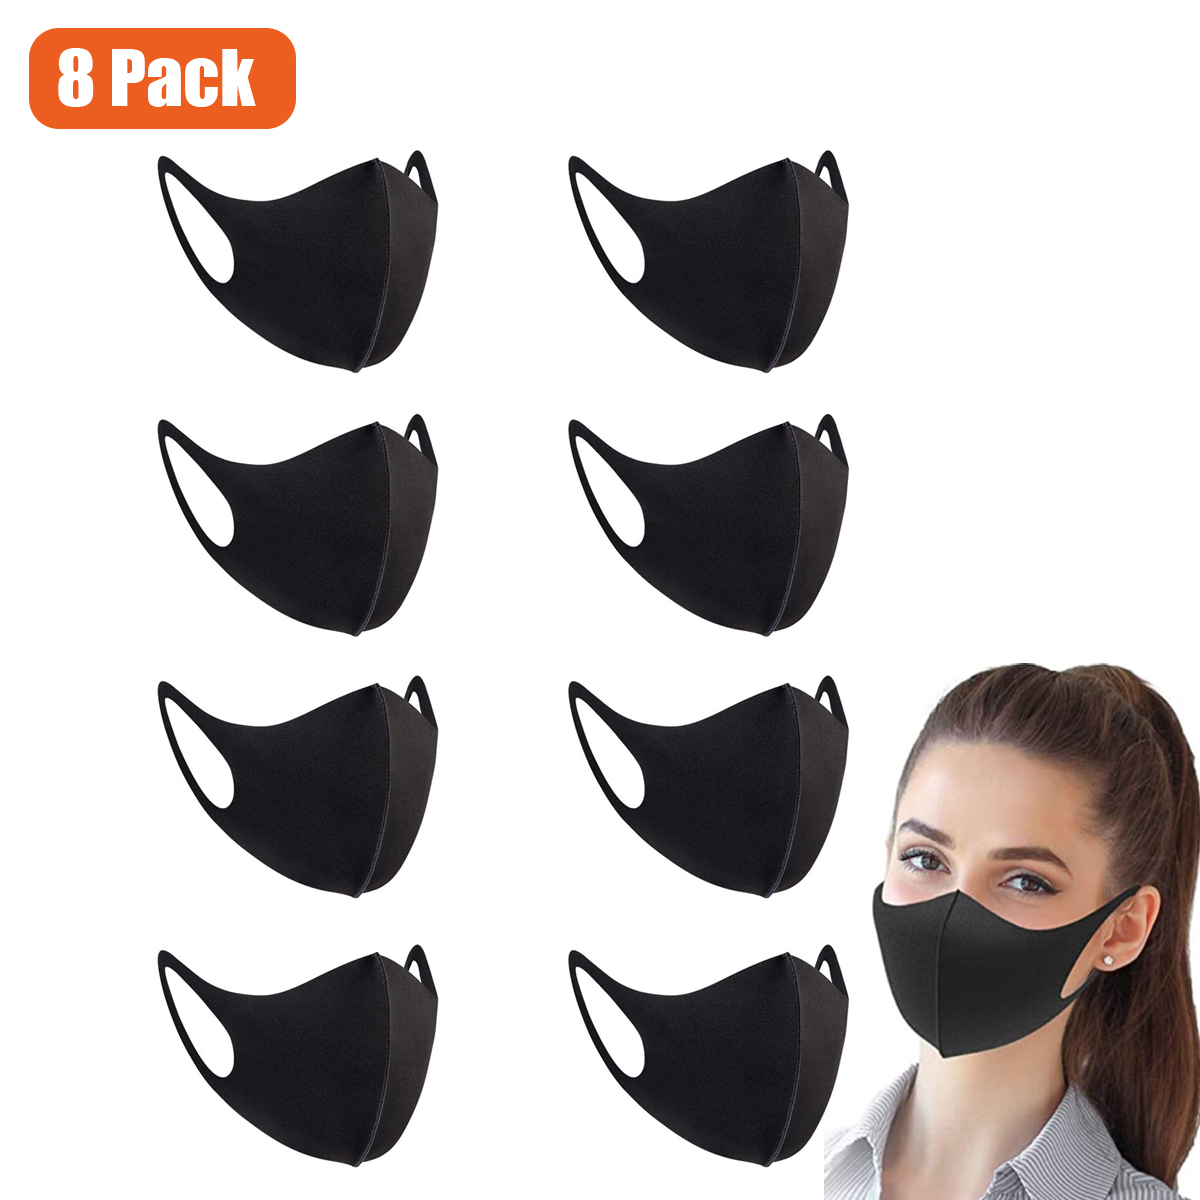 8 Pack Adults Unisex Fashion Cloth Fabric Mask, Earloop